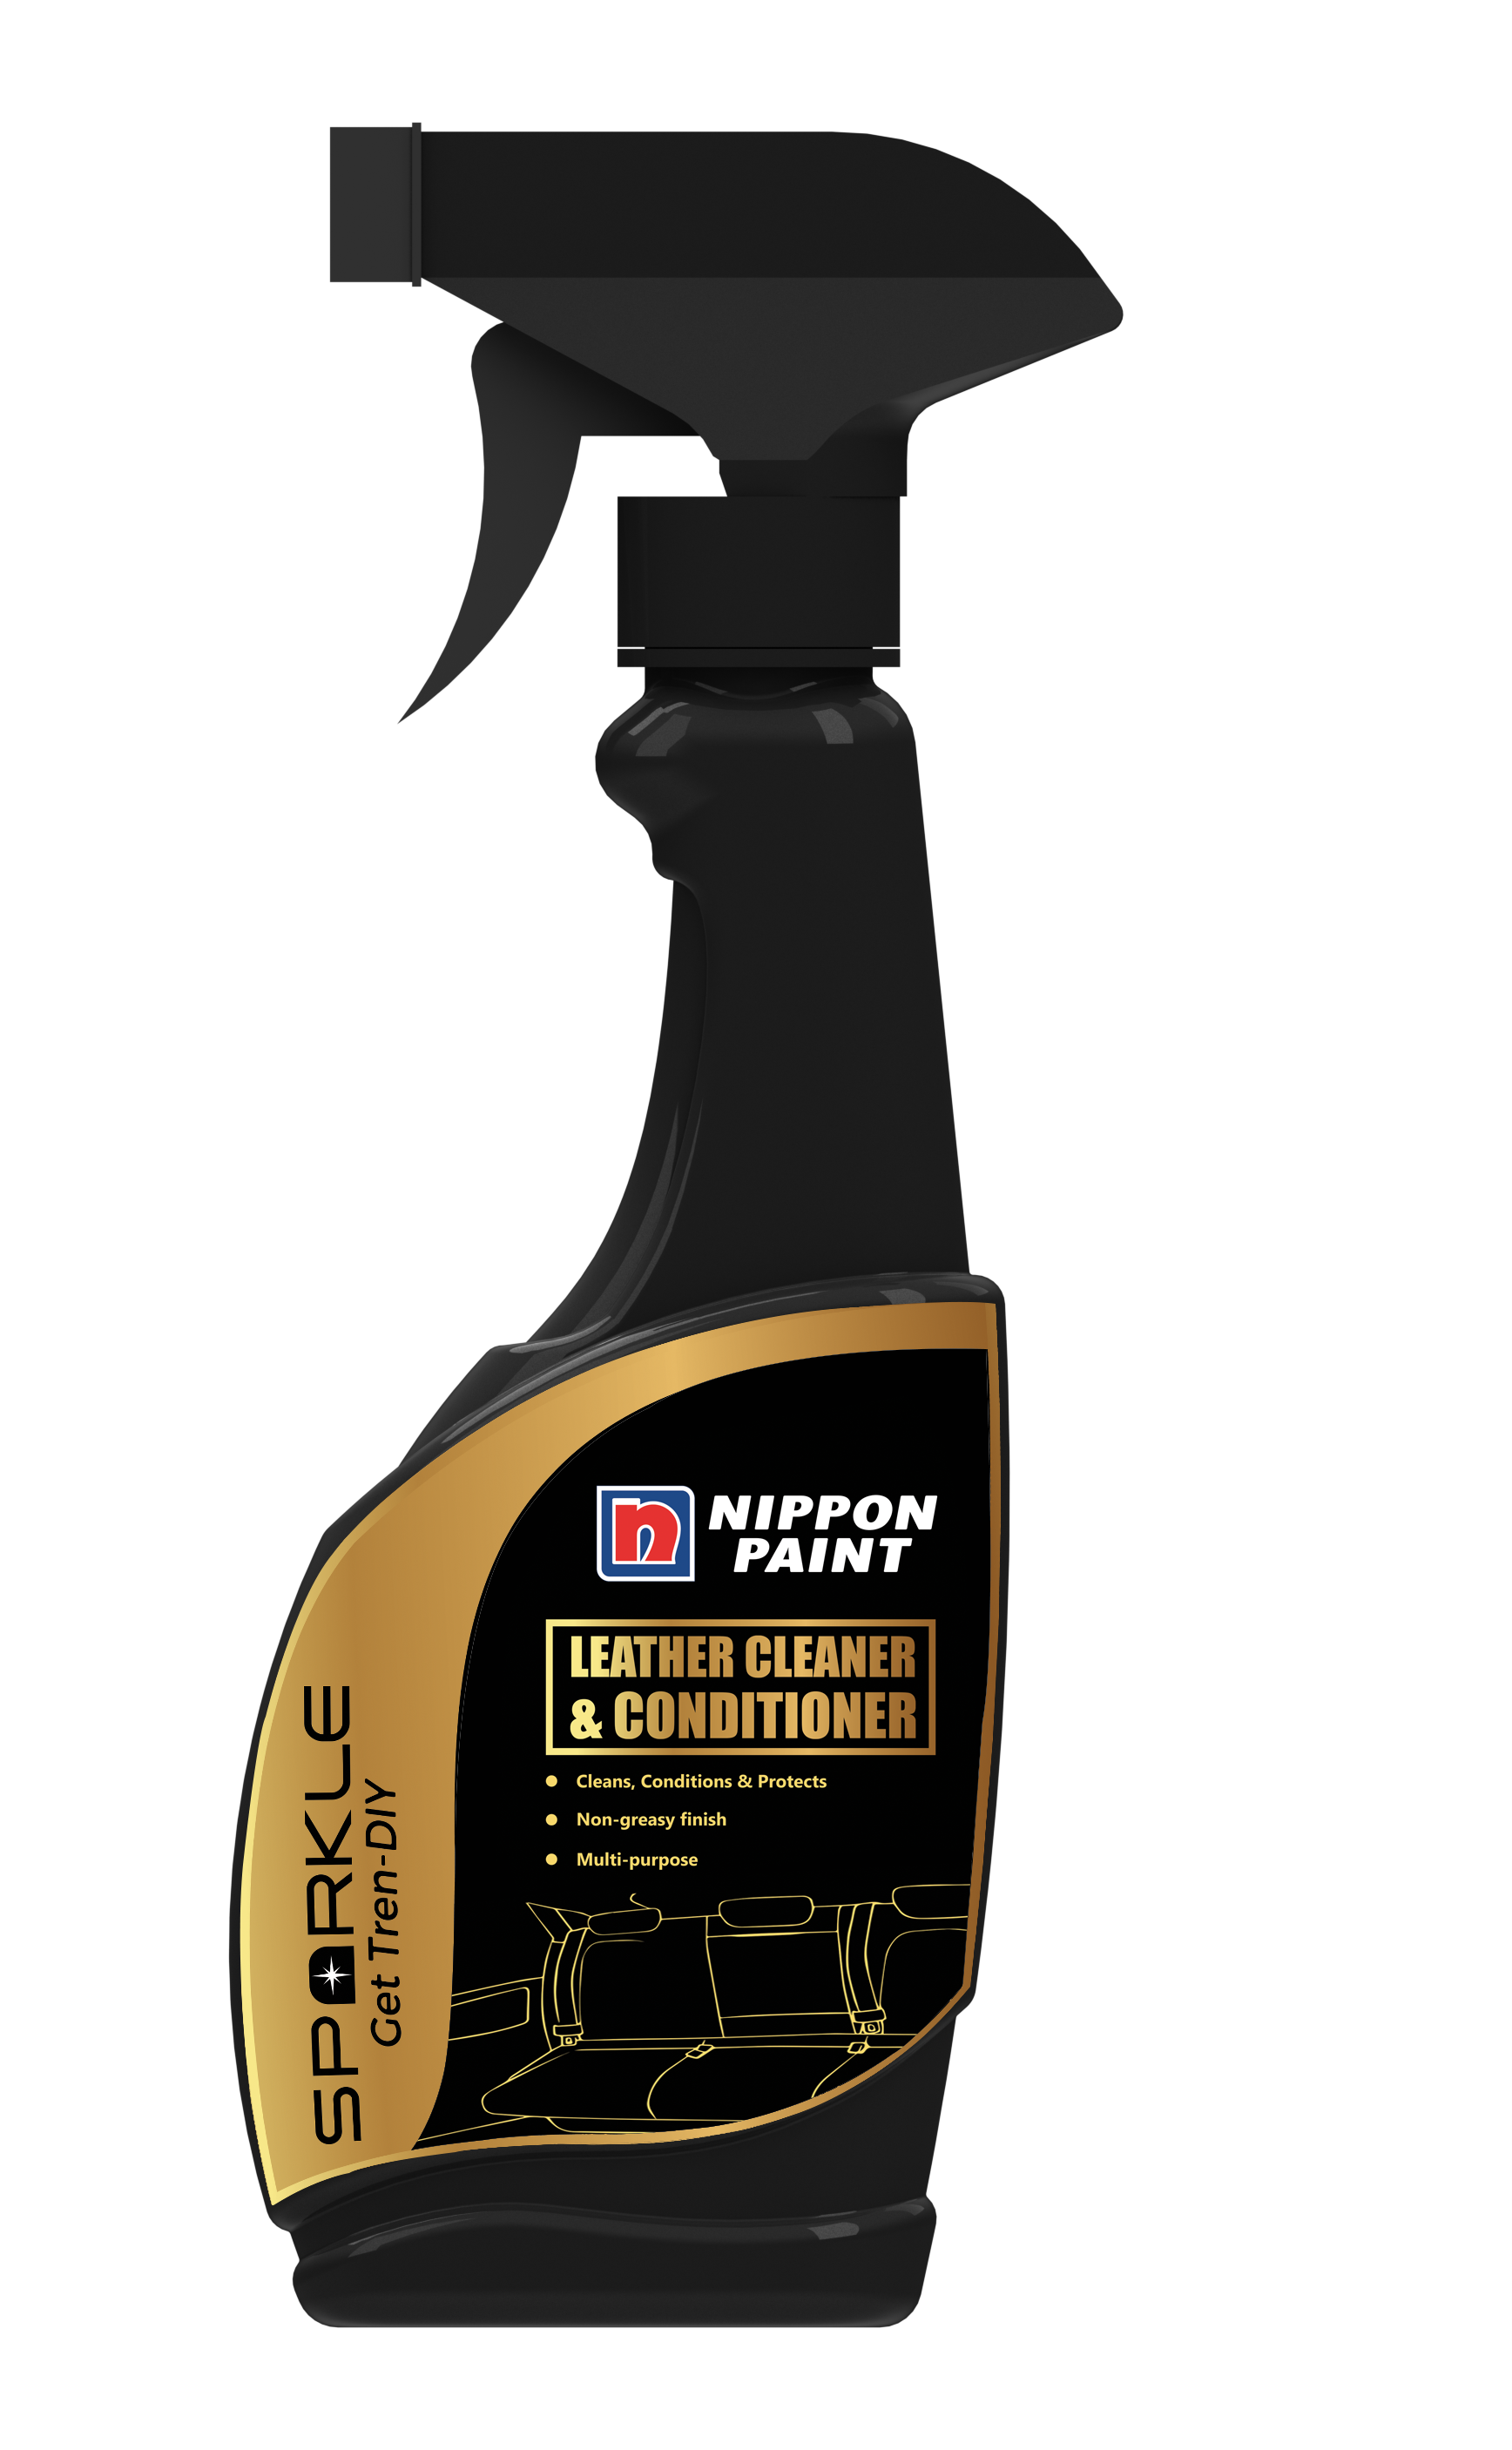 Leather Cleaner And Conditioner By Nippon Paint Ensures Effective Cleaning For Leather And Prevents Dulling Fading And Cra Nippon Paint Spray Wax Dry Car Wash